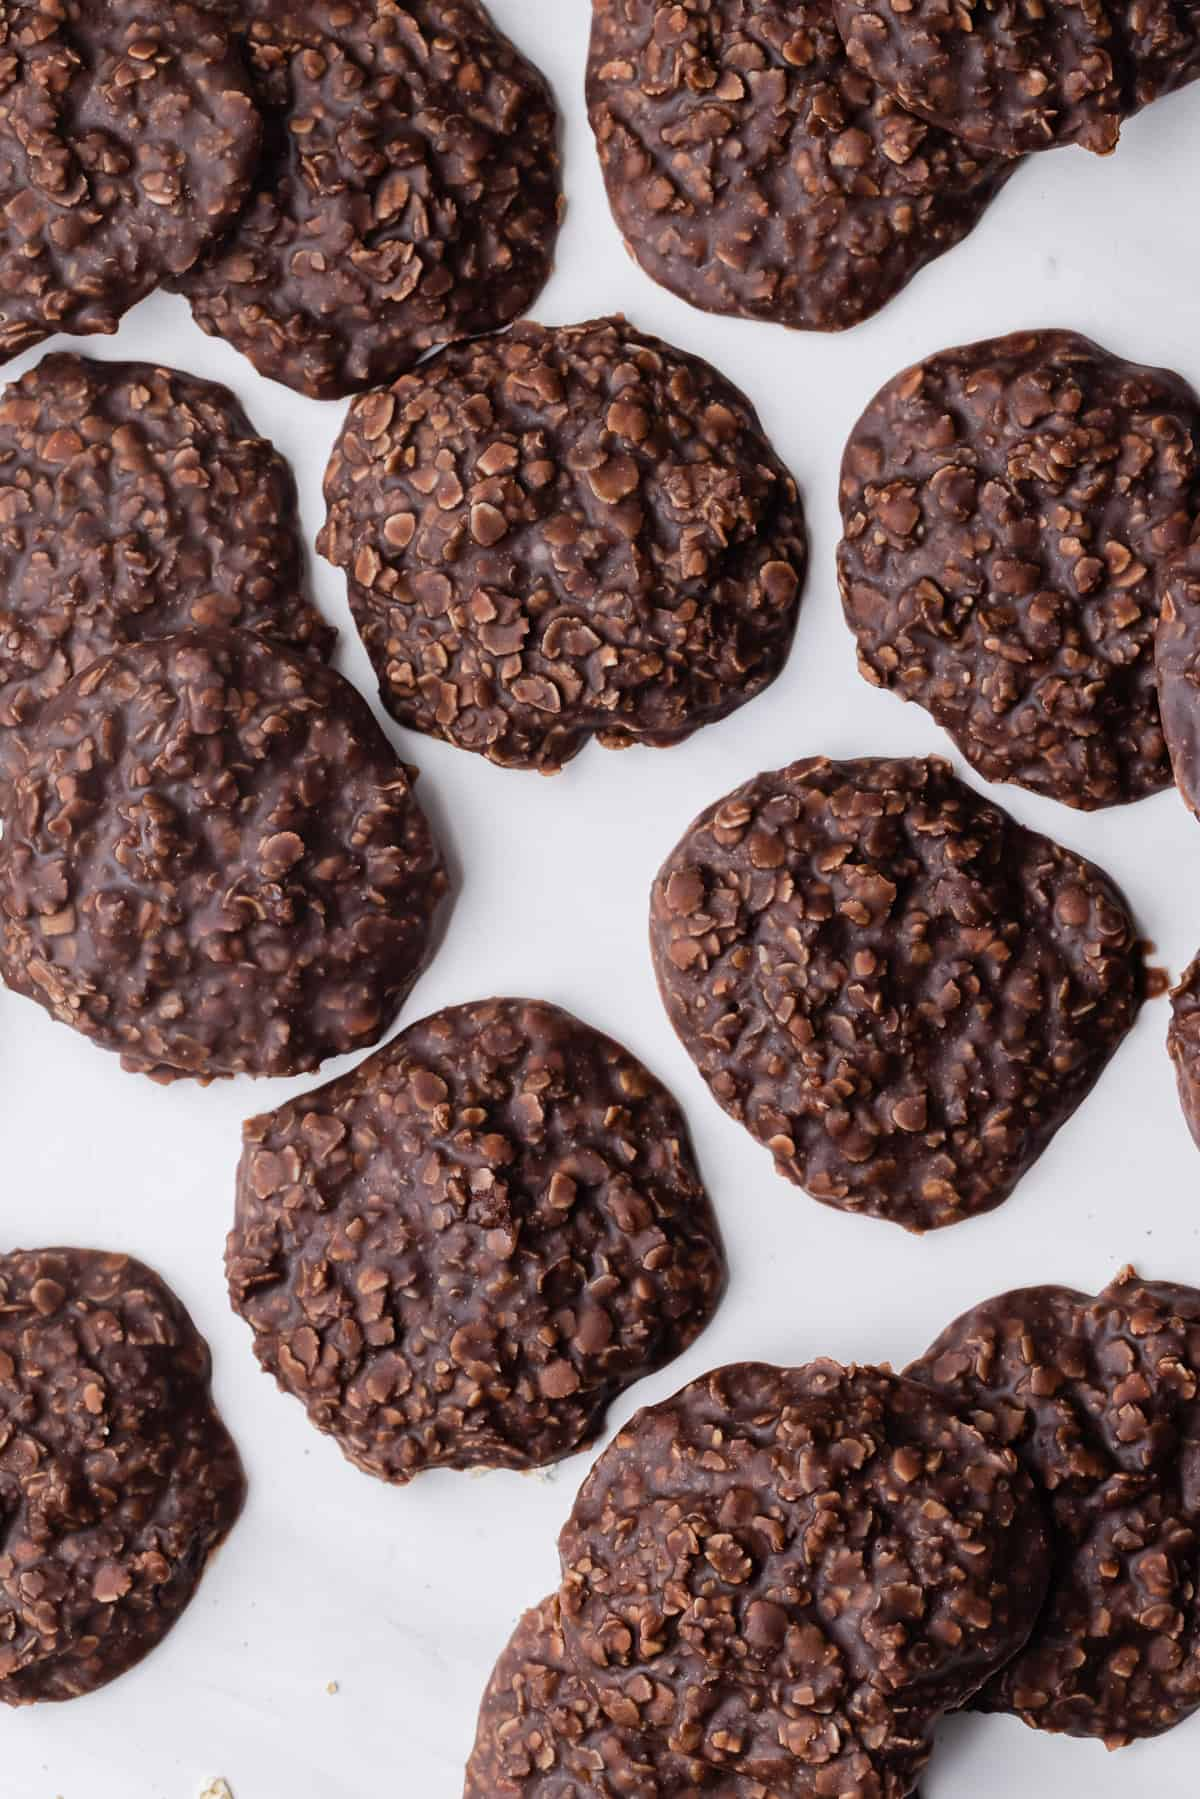 No bake oatmeal cookies on white background.